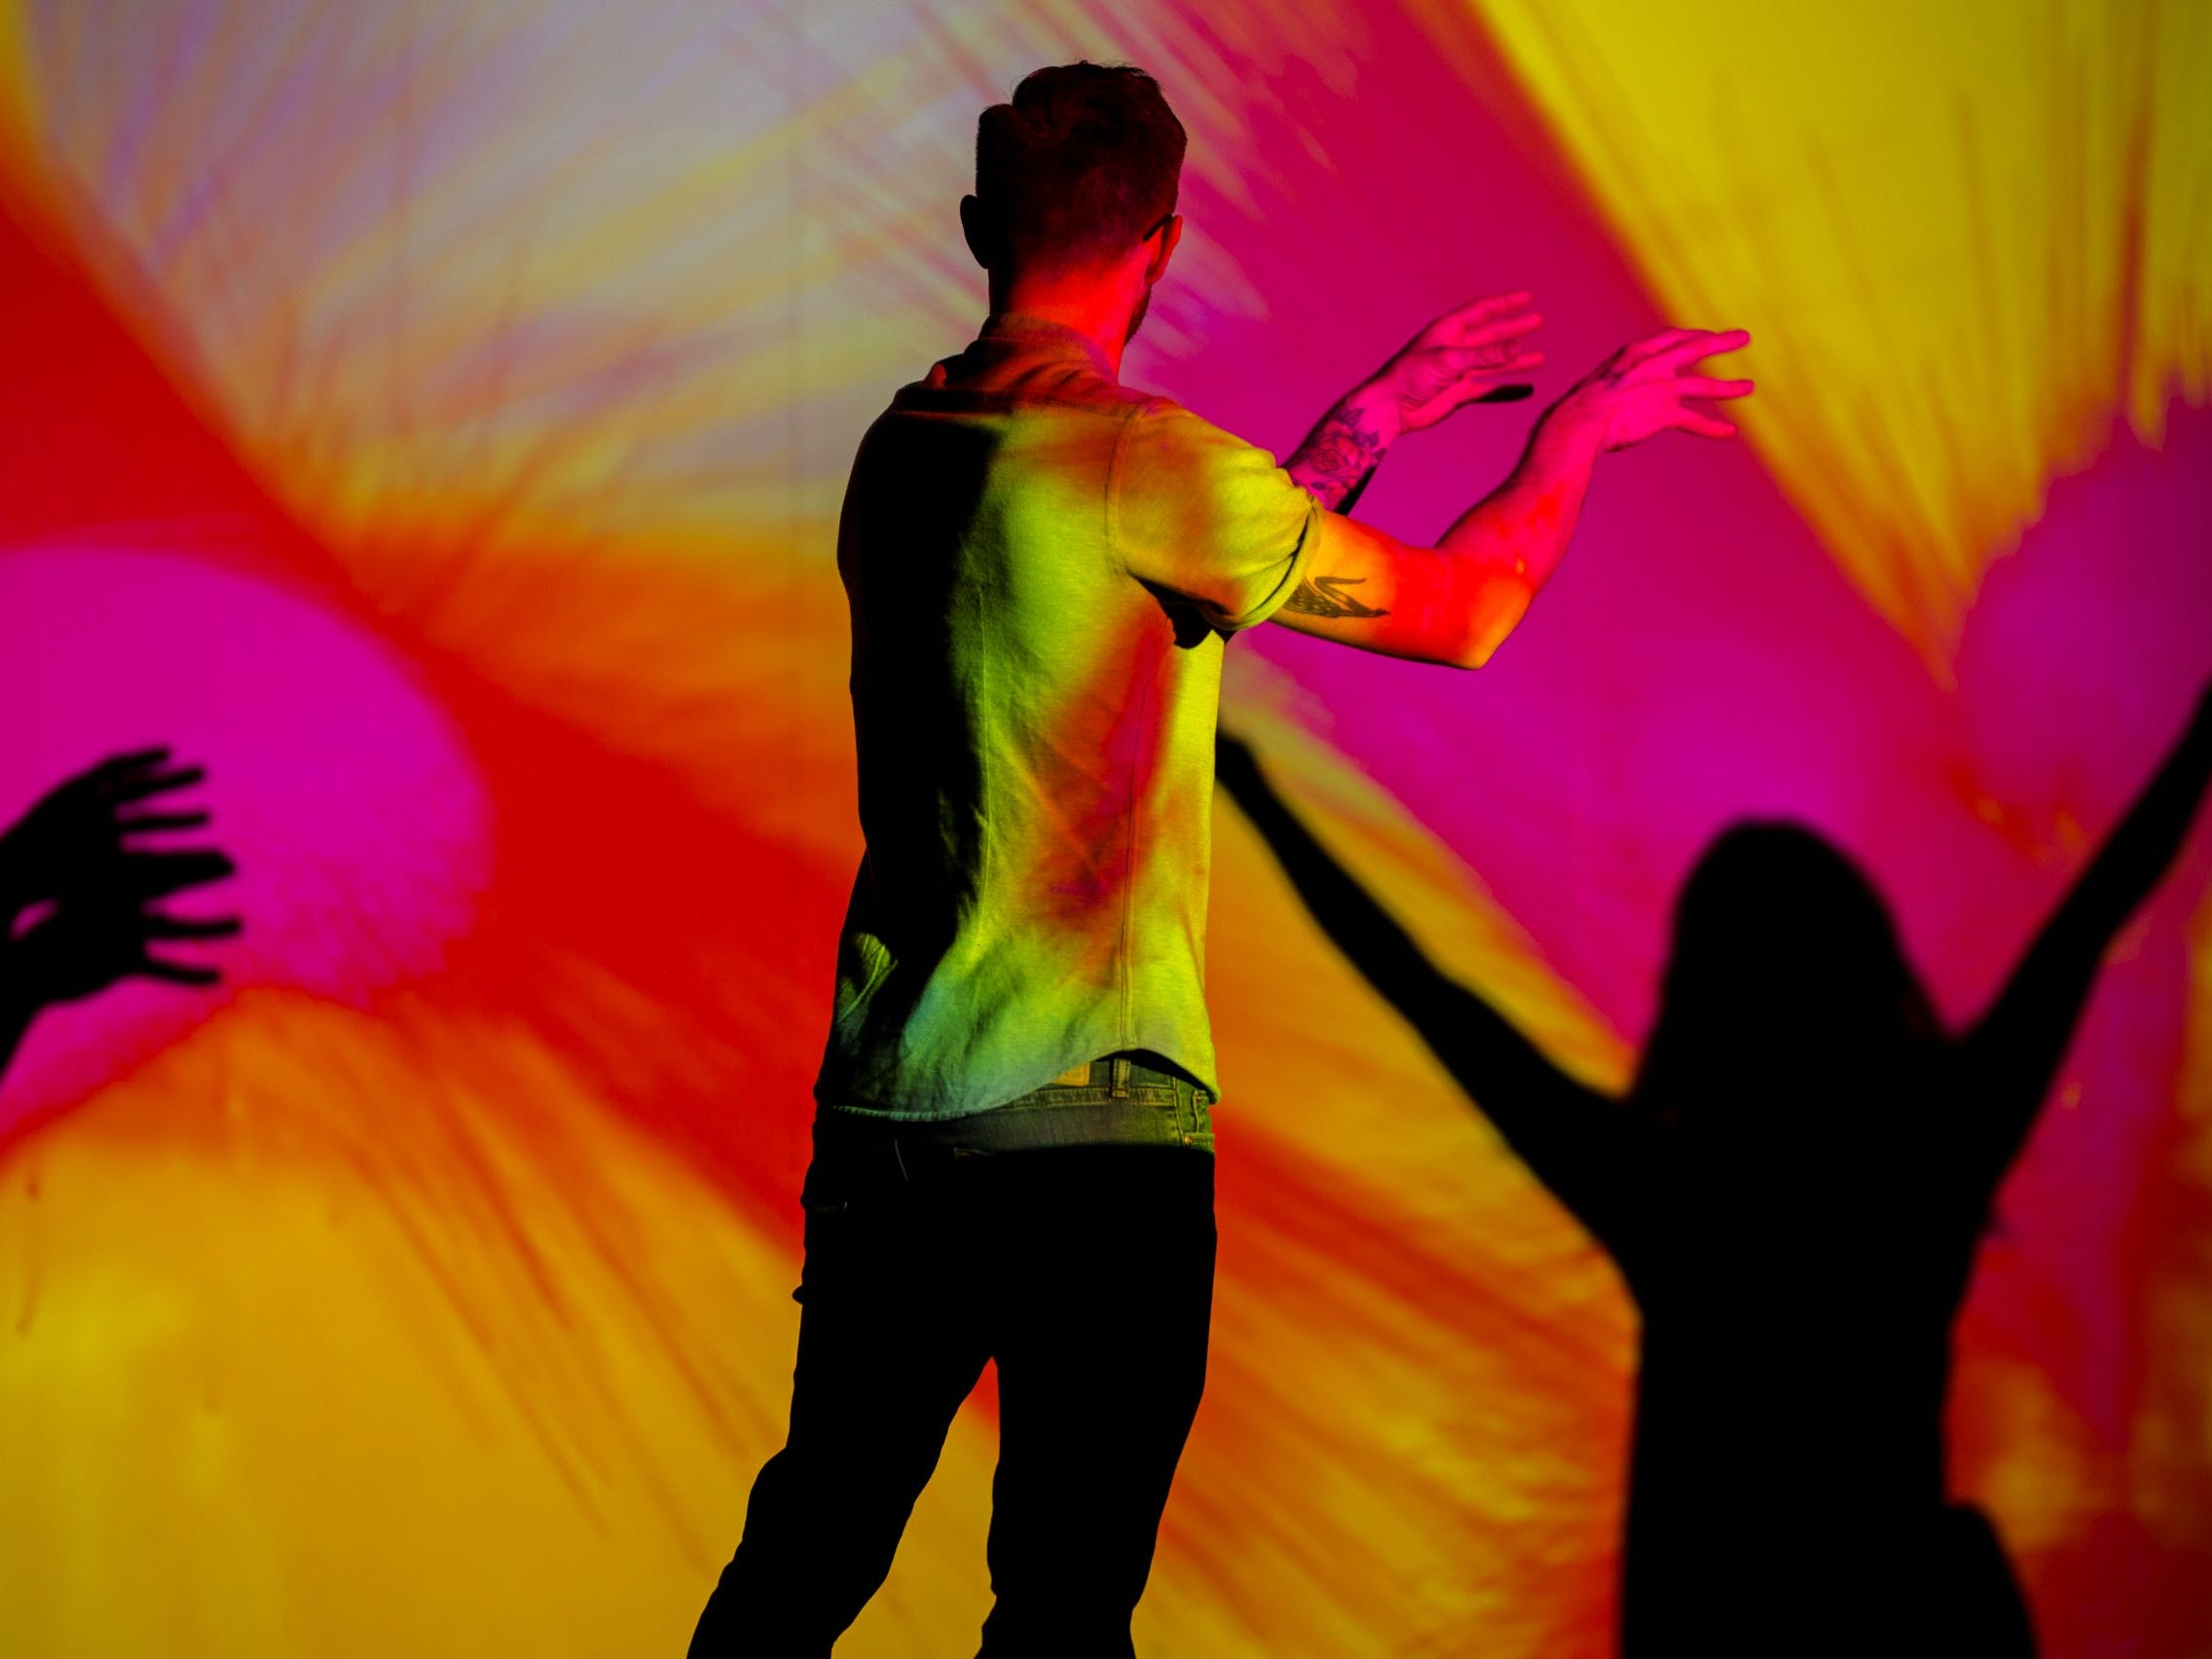 """""""Body Paint"""" by Memo Akten is a visual instrument that allows visitors to paint on a virtual canvas with their body. The artwork is part of Wonderspaces Arizona, an immersive art show open April through mid-July 2019 at Scottsdale Fashion Square."""